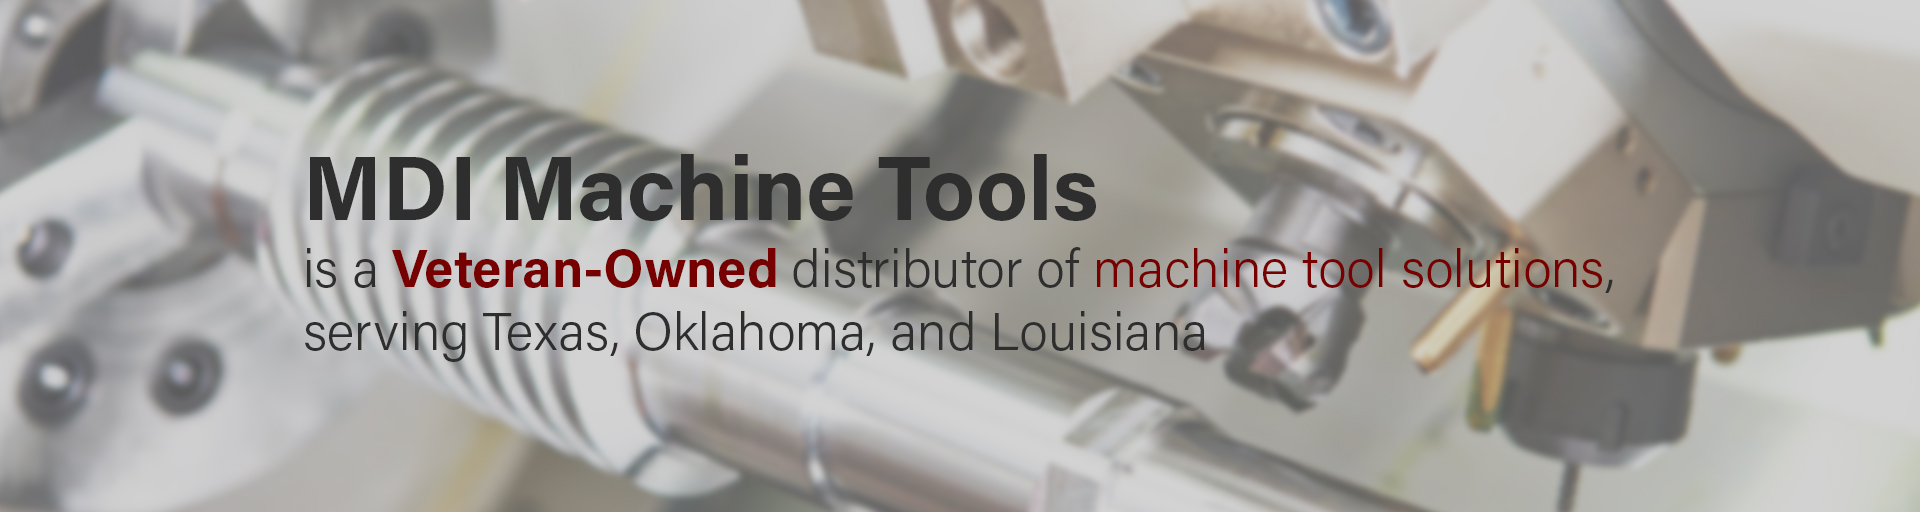 MDI Machine Tools Header Homepage Banner